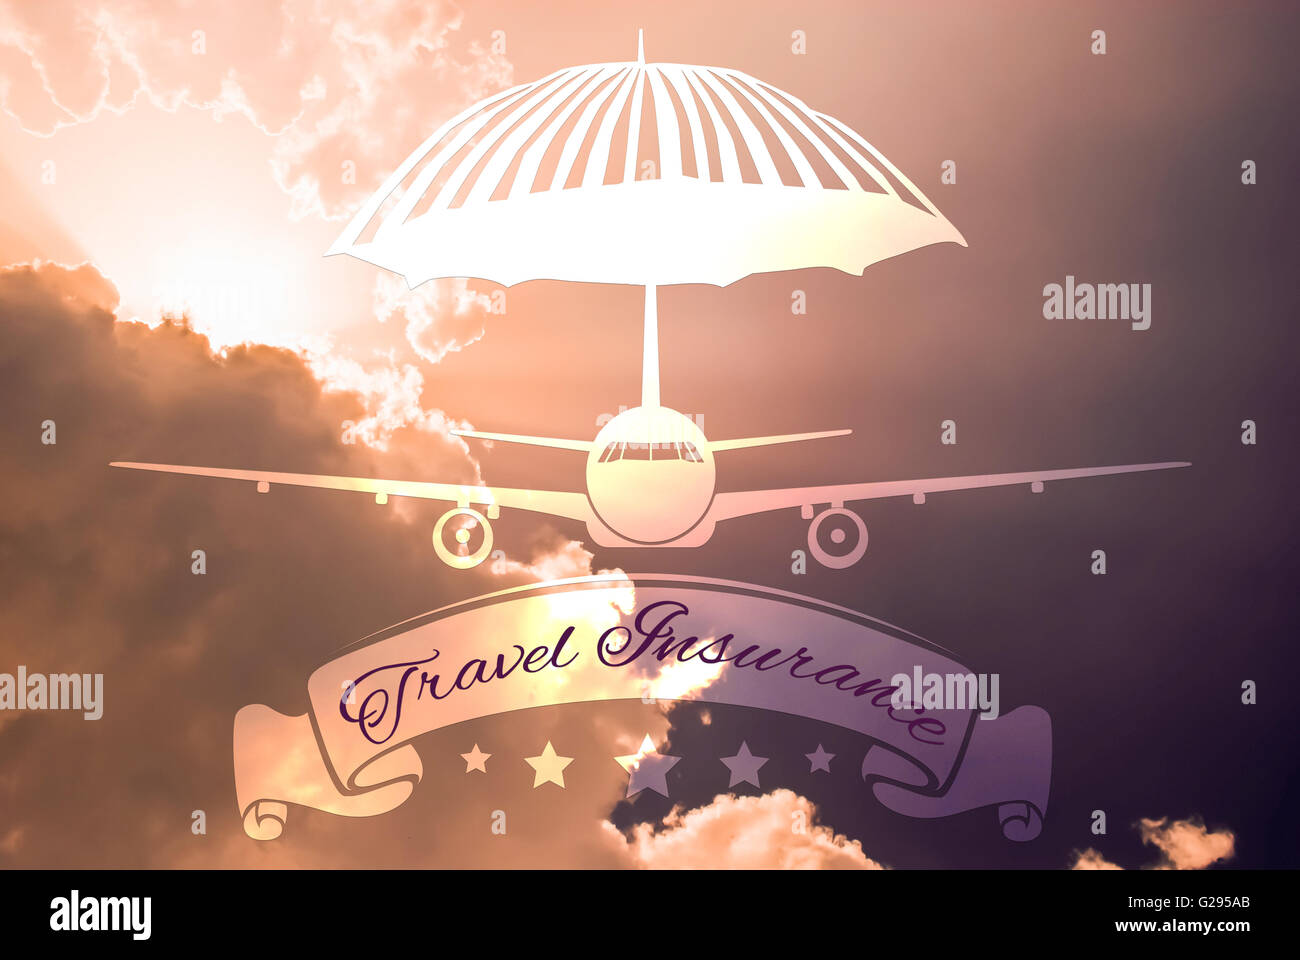 Travel insurance concept made with plane and protective umbrella shape on sky background - Stock Image